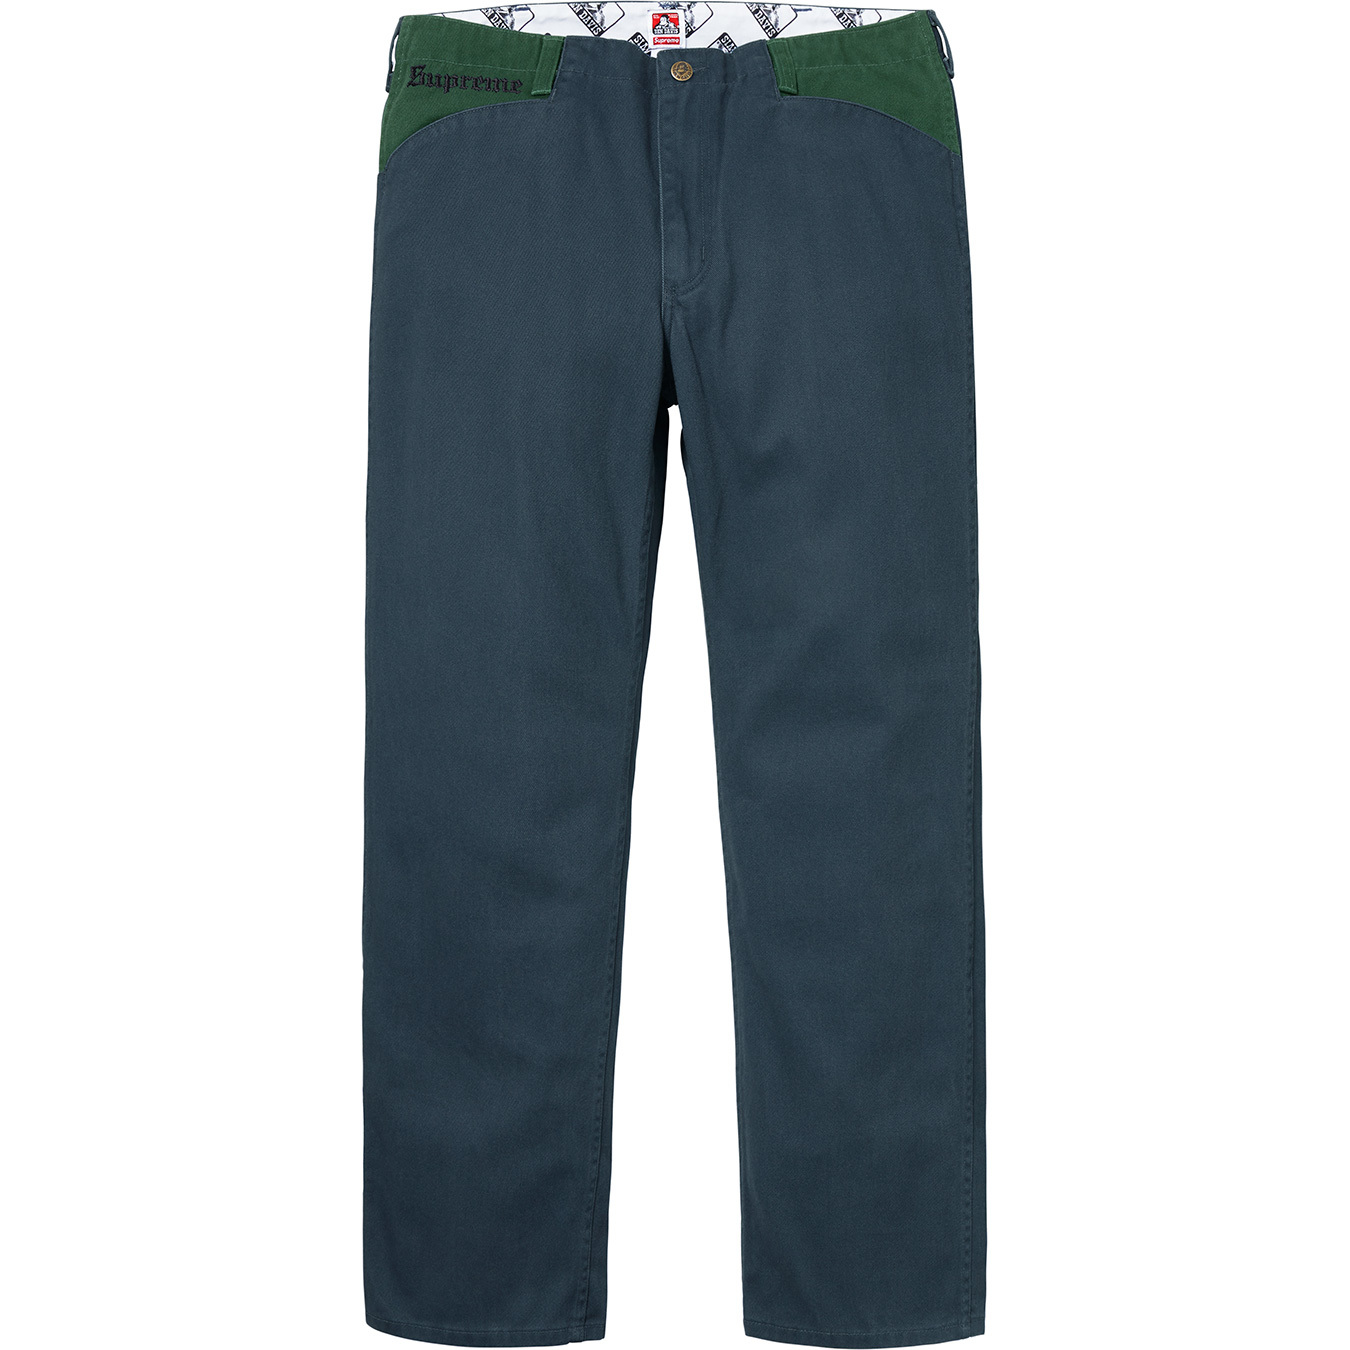 supreme-ben-davis-19aw-19fw-collaboration-release-20190914-week3-work-pant